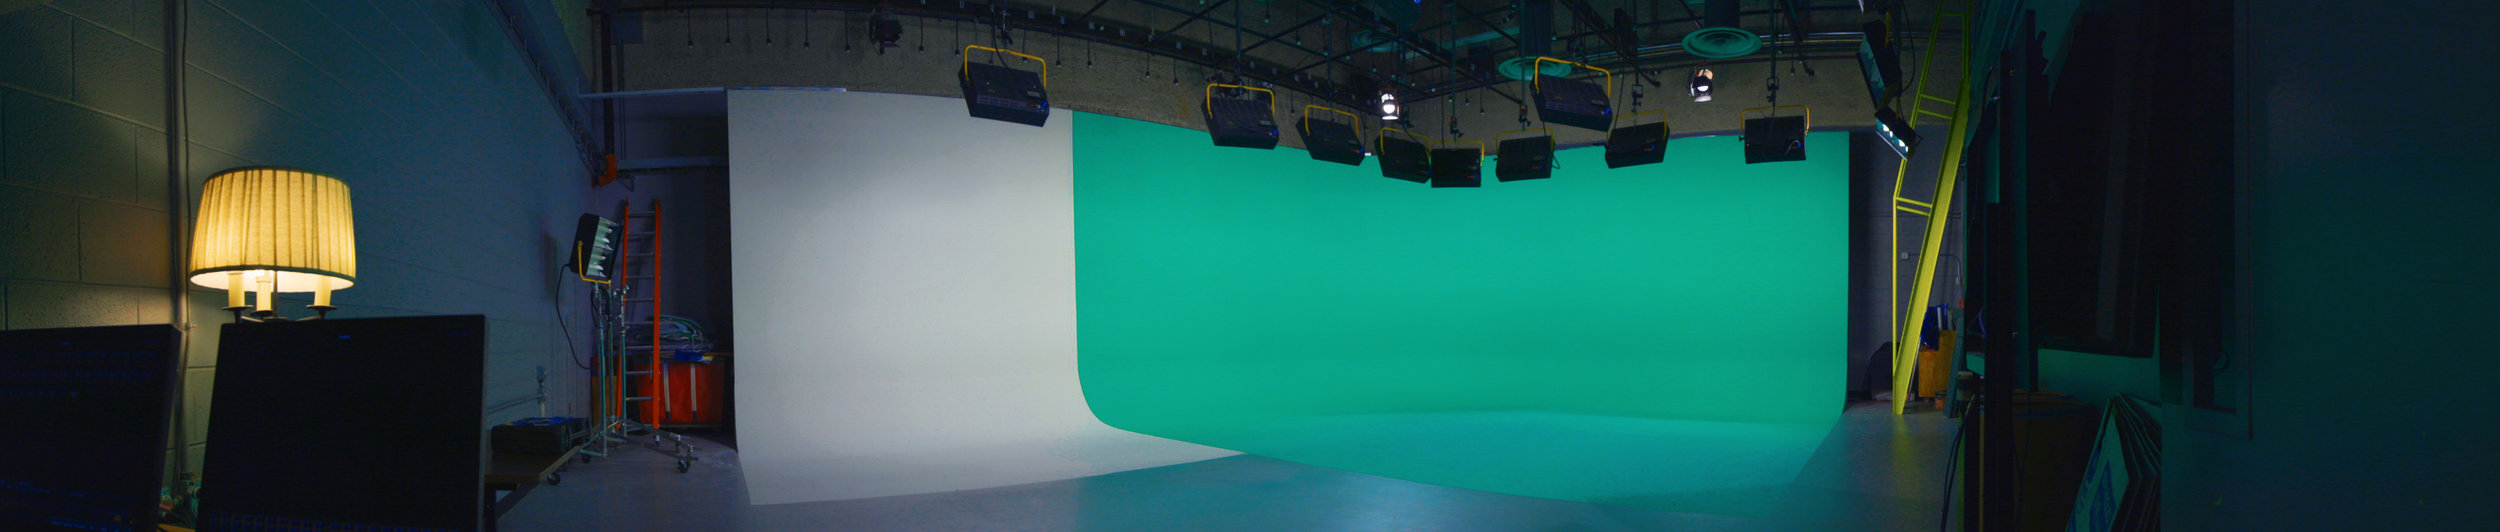 Production Studio Panorama Color Graded.jpg